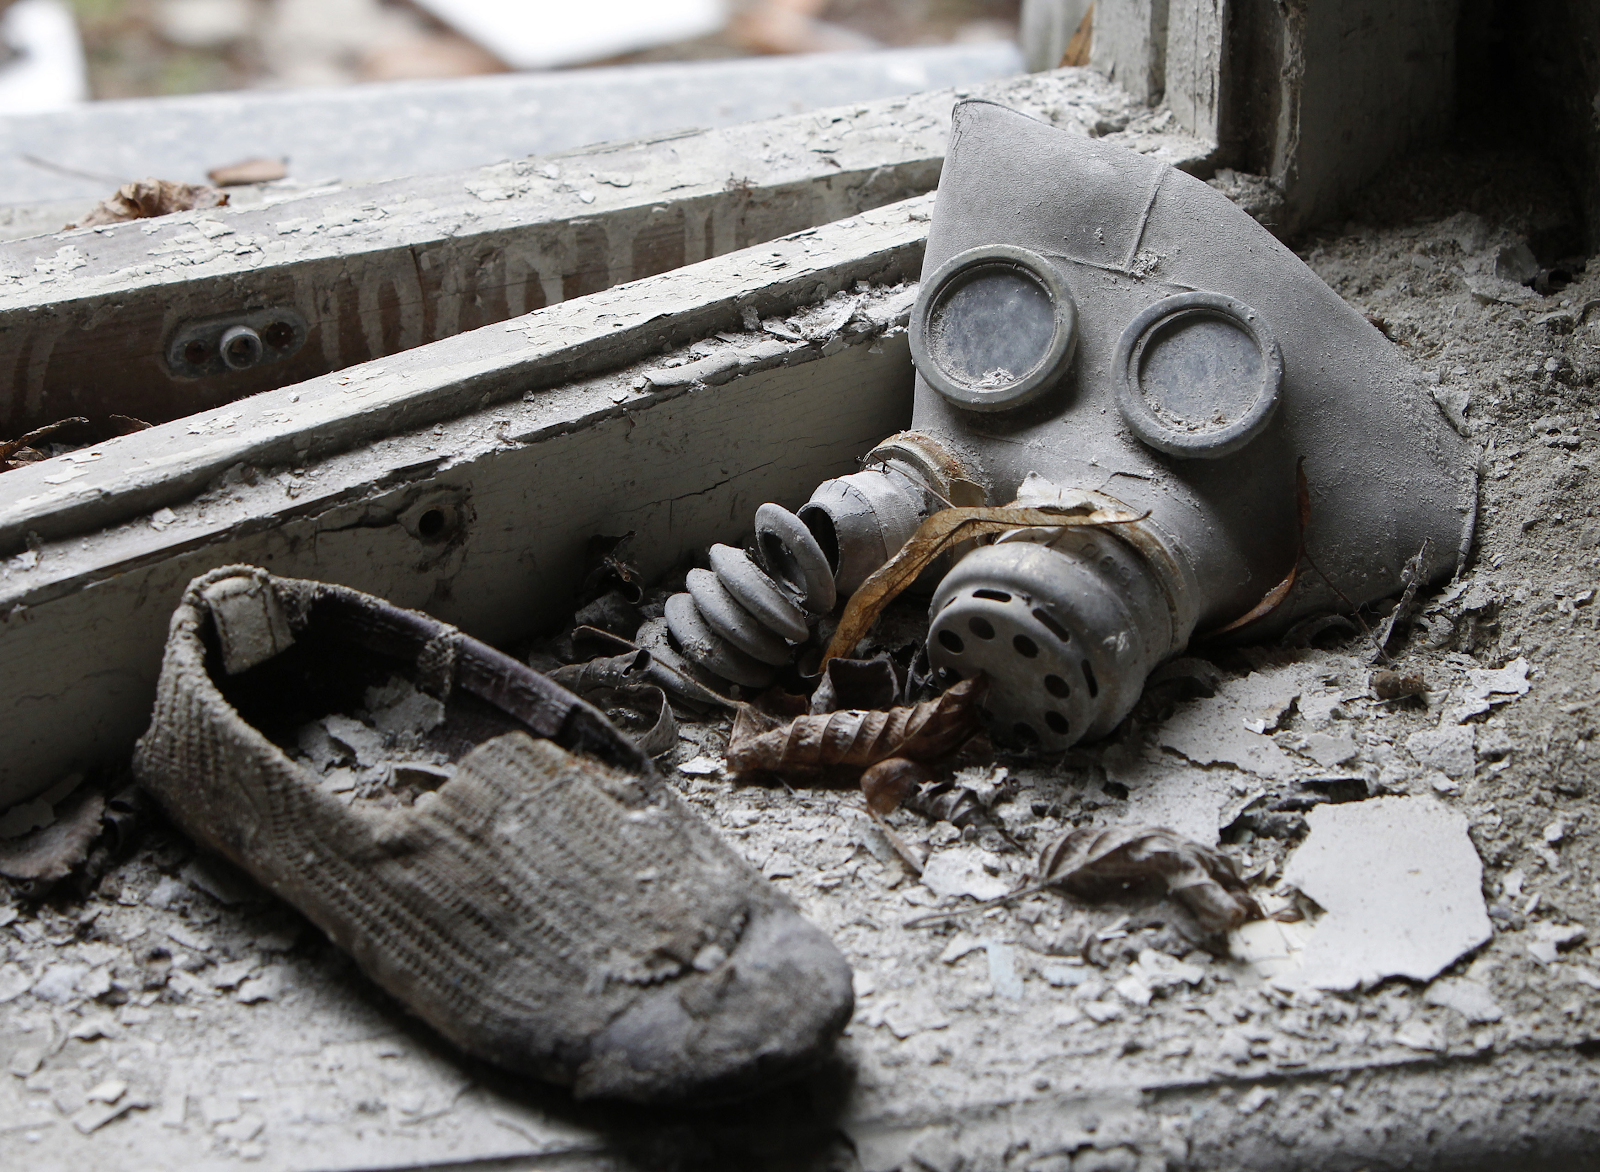 A child's gas mask and a shoe at a kindergarten in the abandoned city of Pripyat.